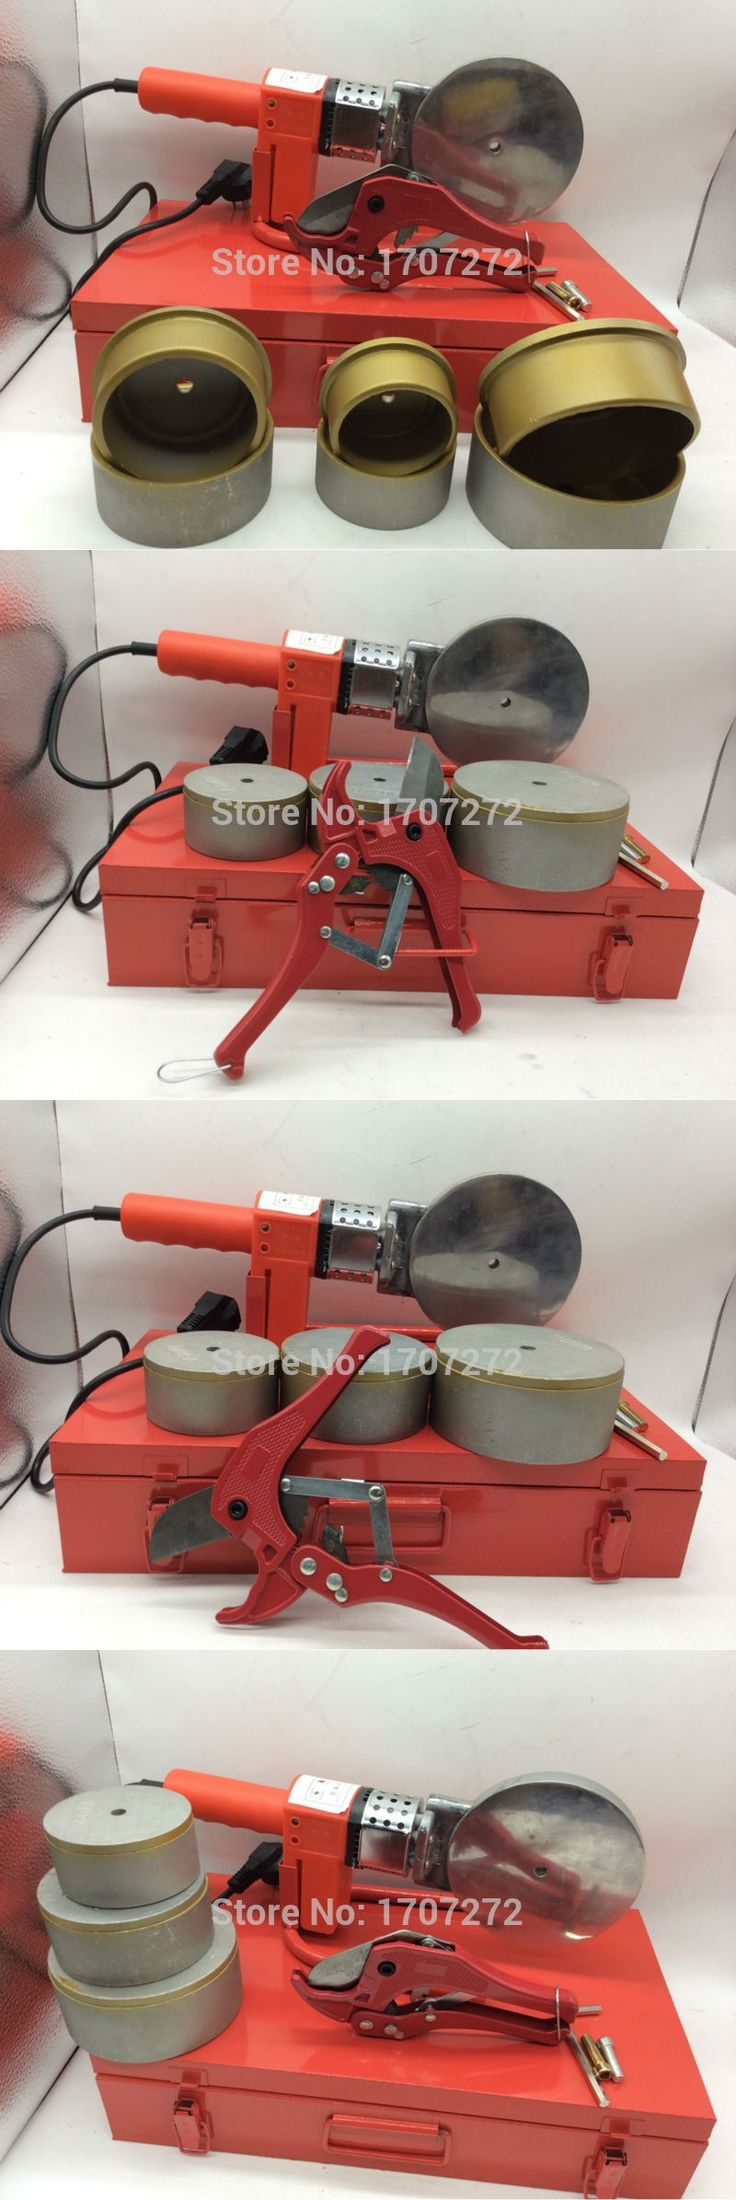 constant temperature electronic PPR Welding Machine, plastic pipe welding machine AC 220V 1500W, 75-110mm welding pipes